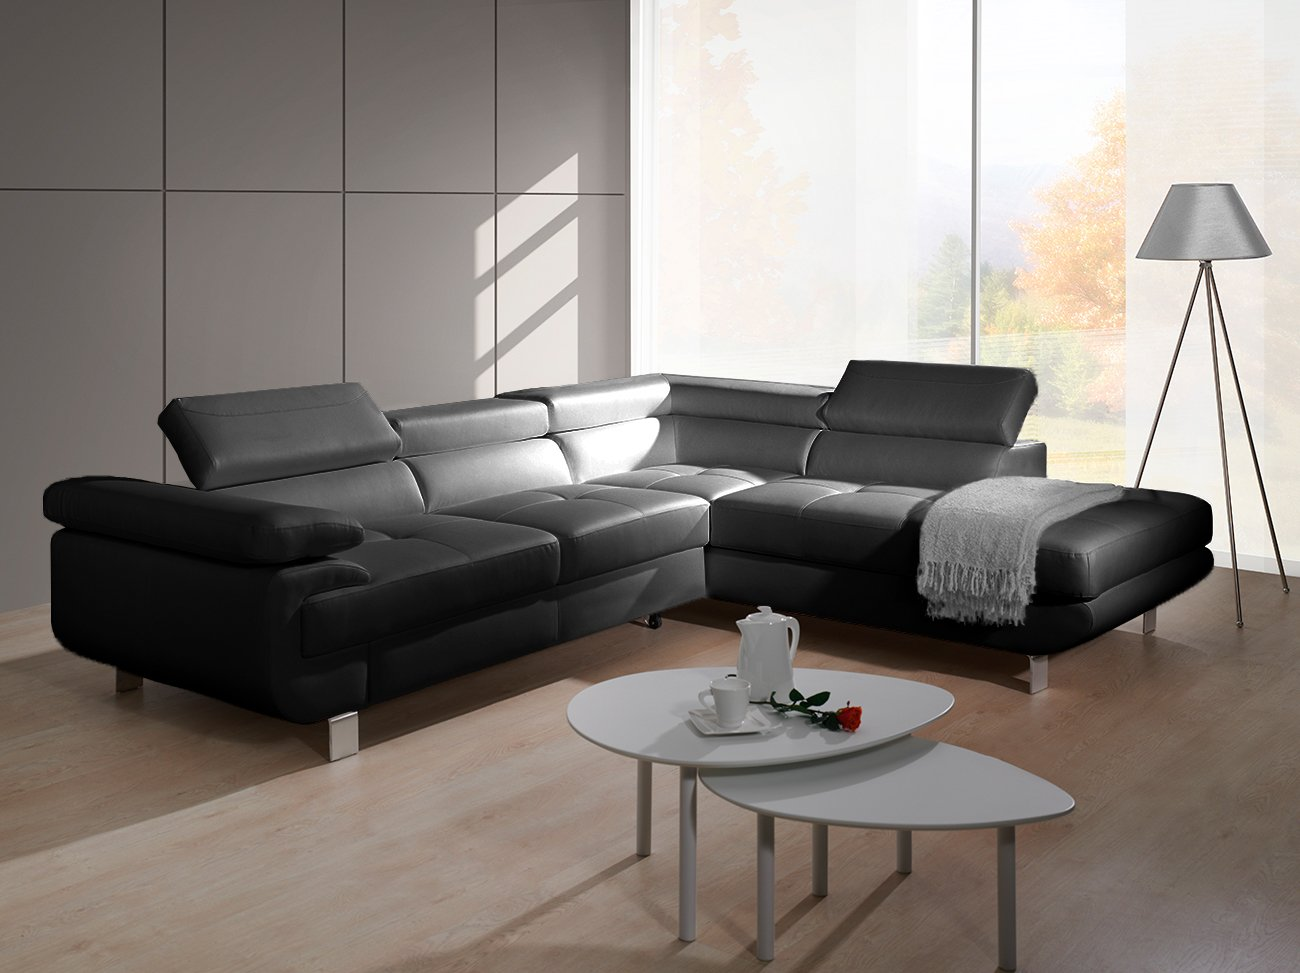 sofa couch ecksofa l form elegant mit bettkasten schlaffunktion. Black Bedroom Furniture Sets. Home Design Ideas